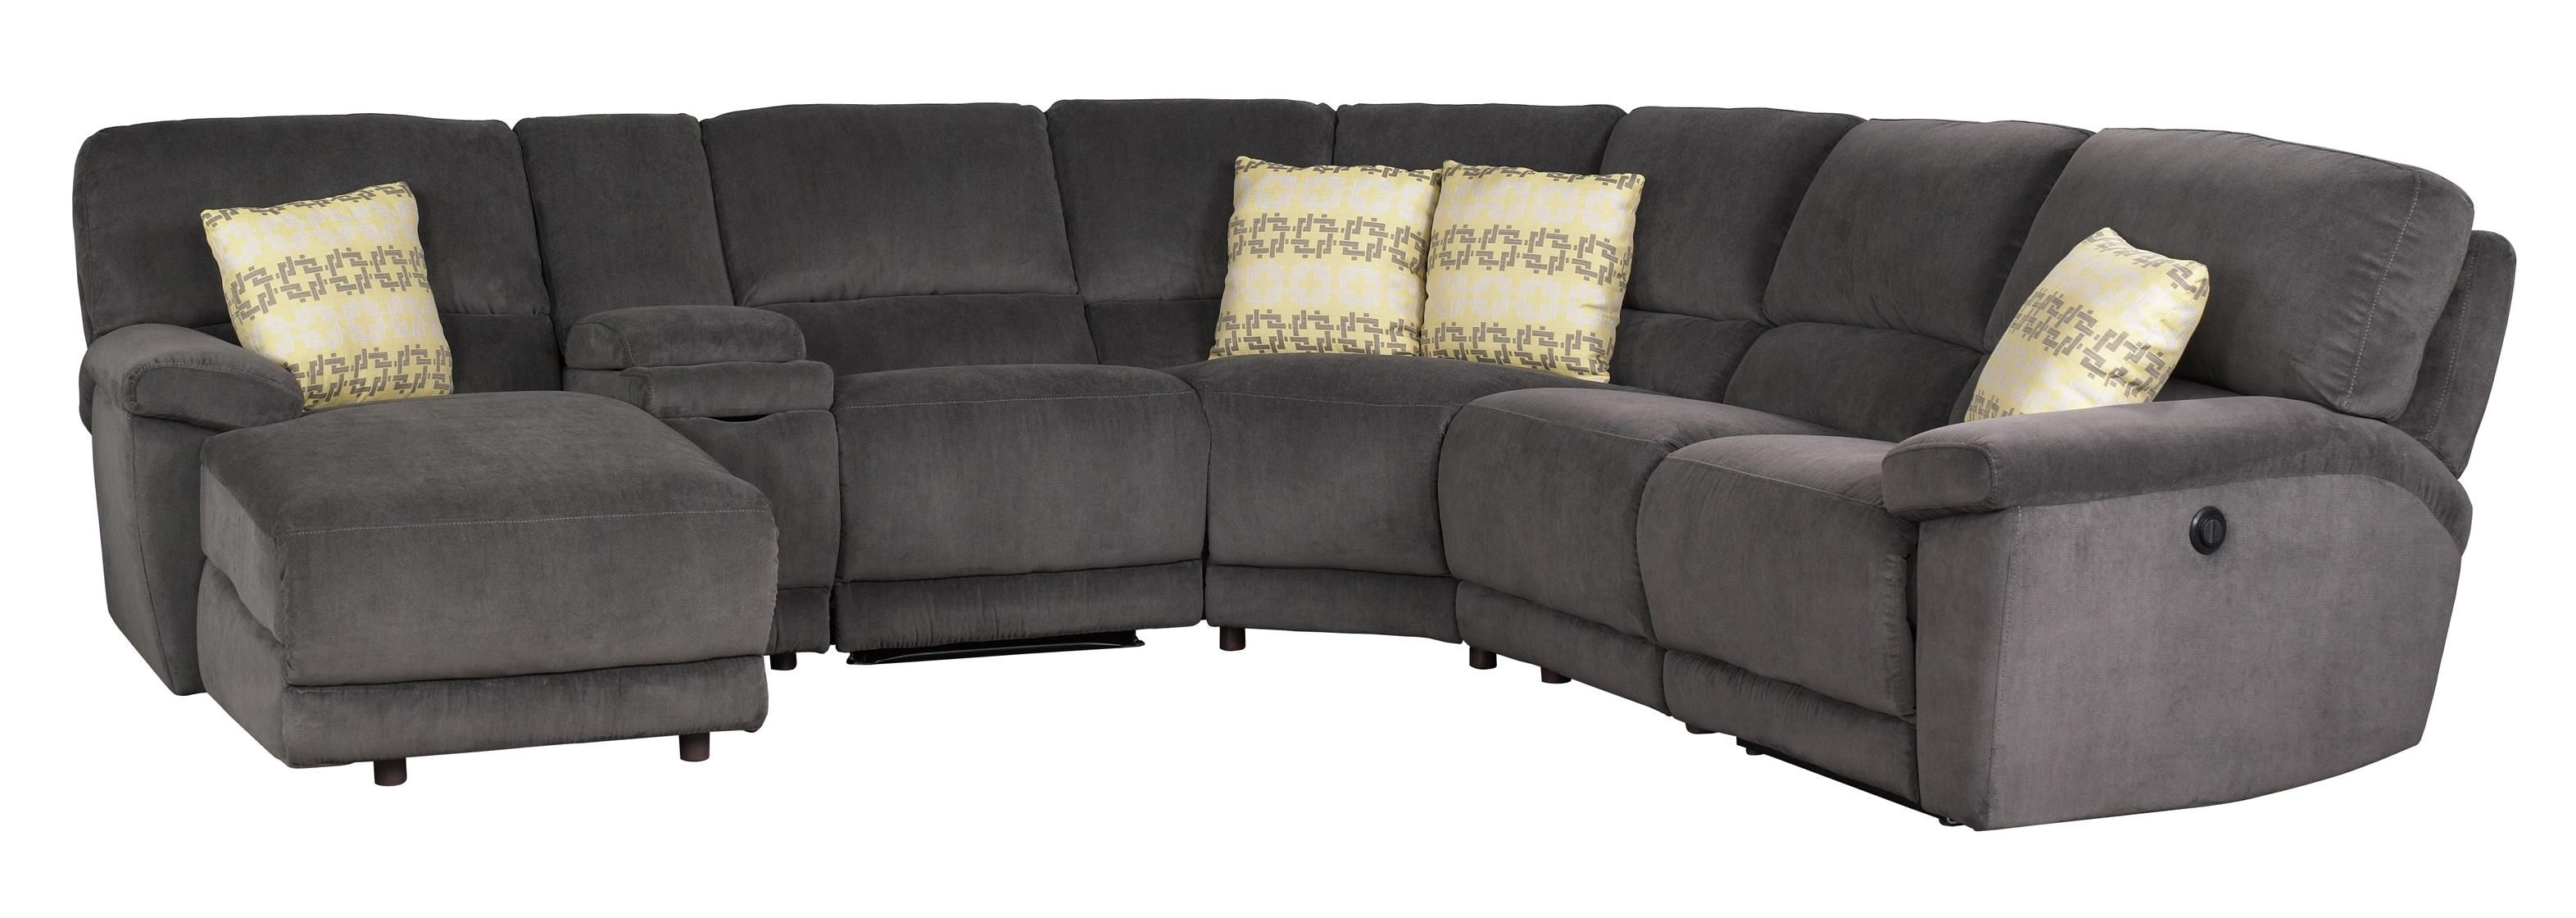 Aikman Reclining Sectional Sofa by Jonathan Louis